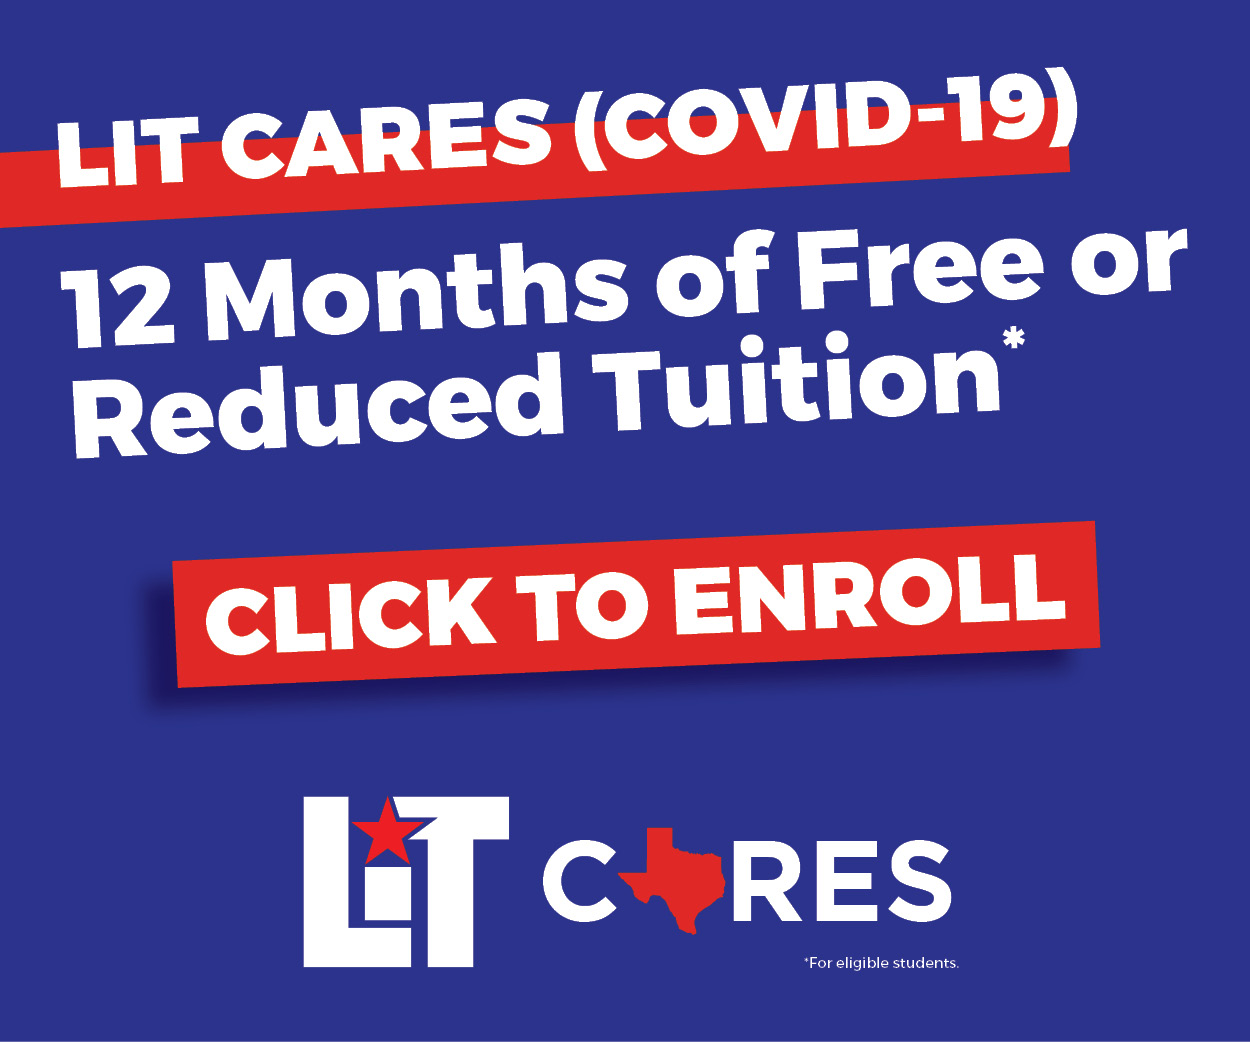 LIT Cares(COVID-19) 12 months of free or reduced tuition. Click to enroll.